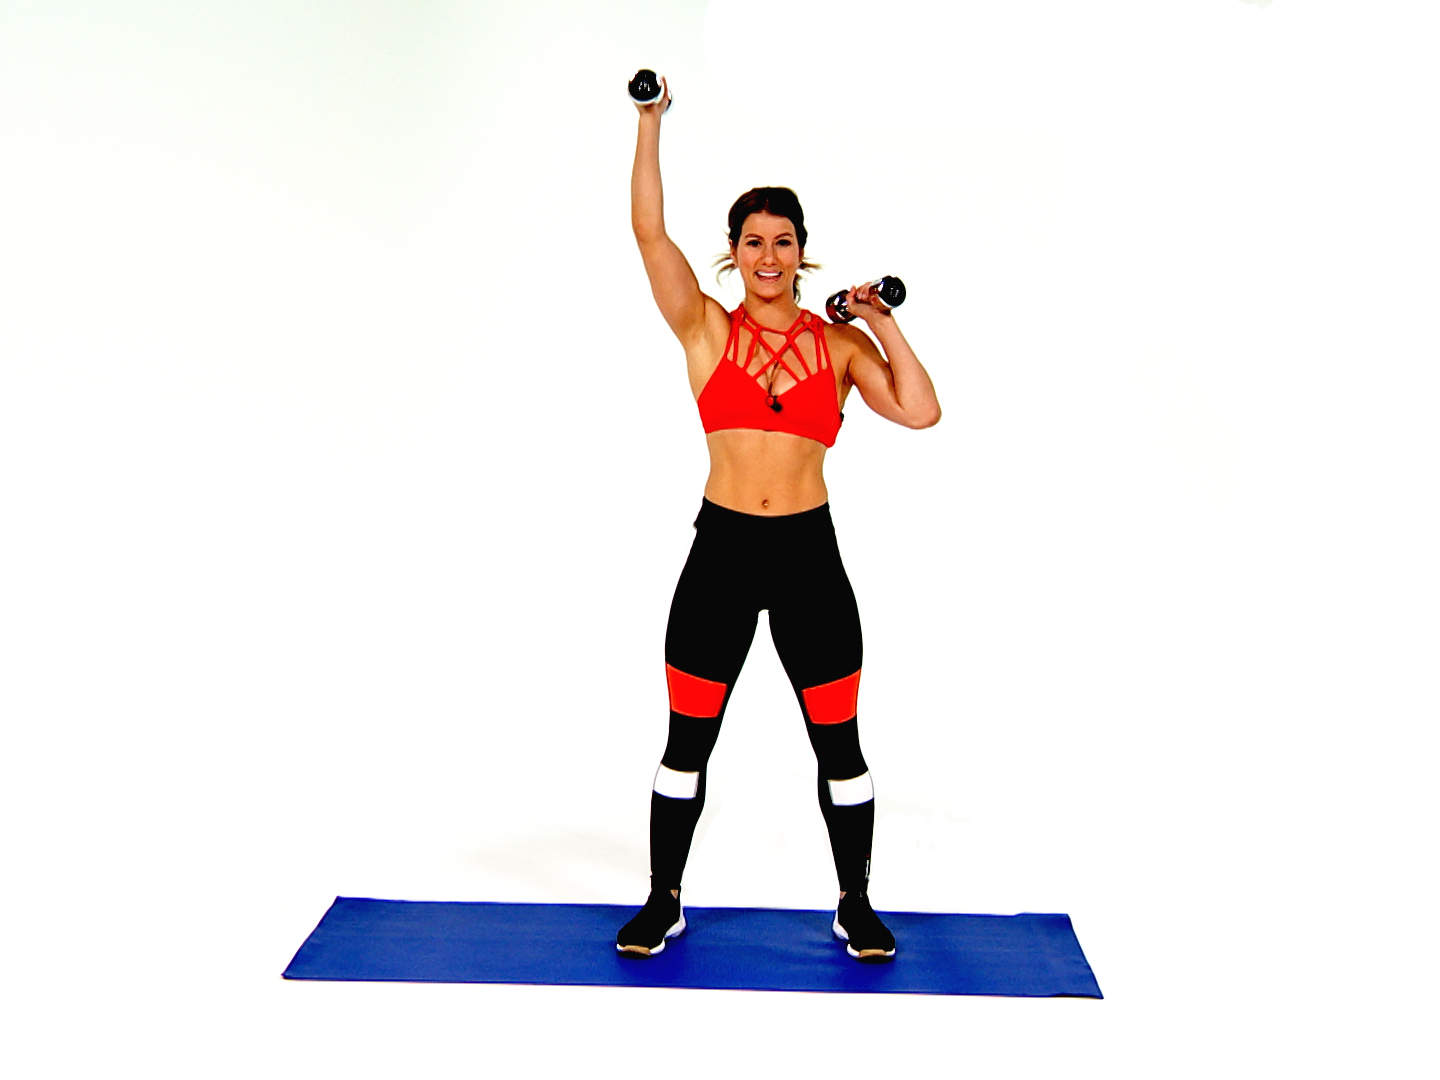 jen-widerstroms-7-minute-dumbbell-circuit-video